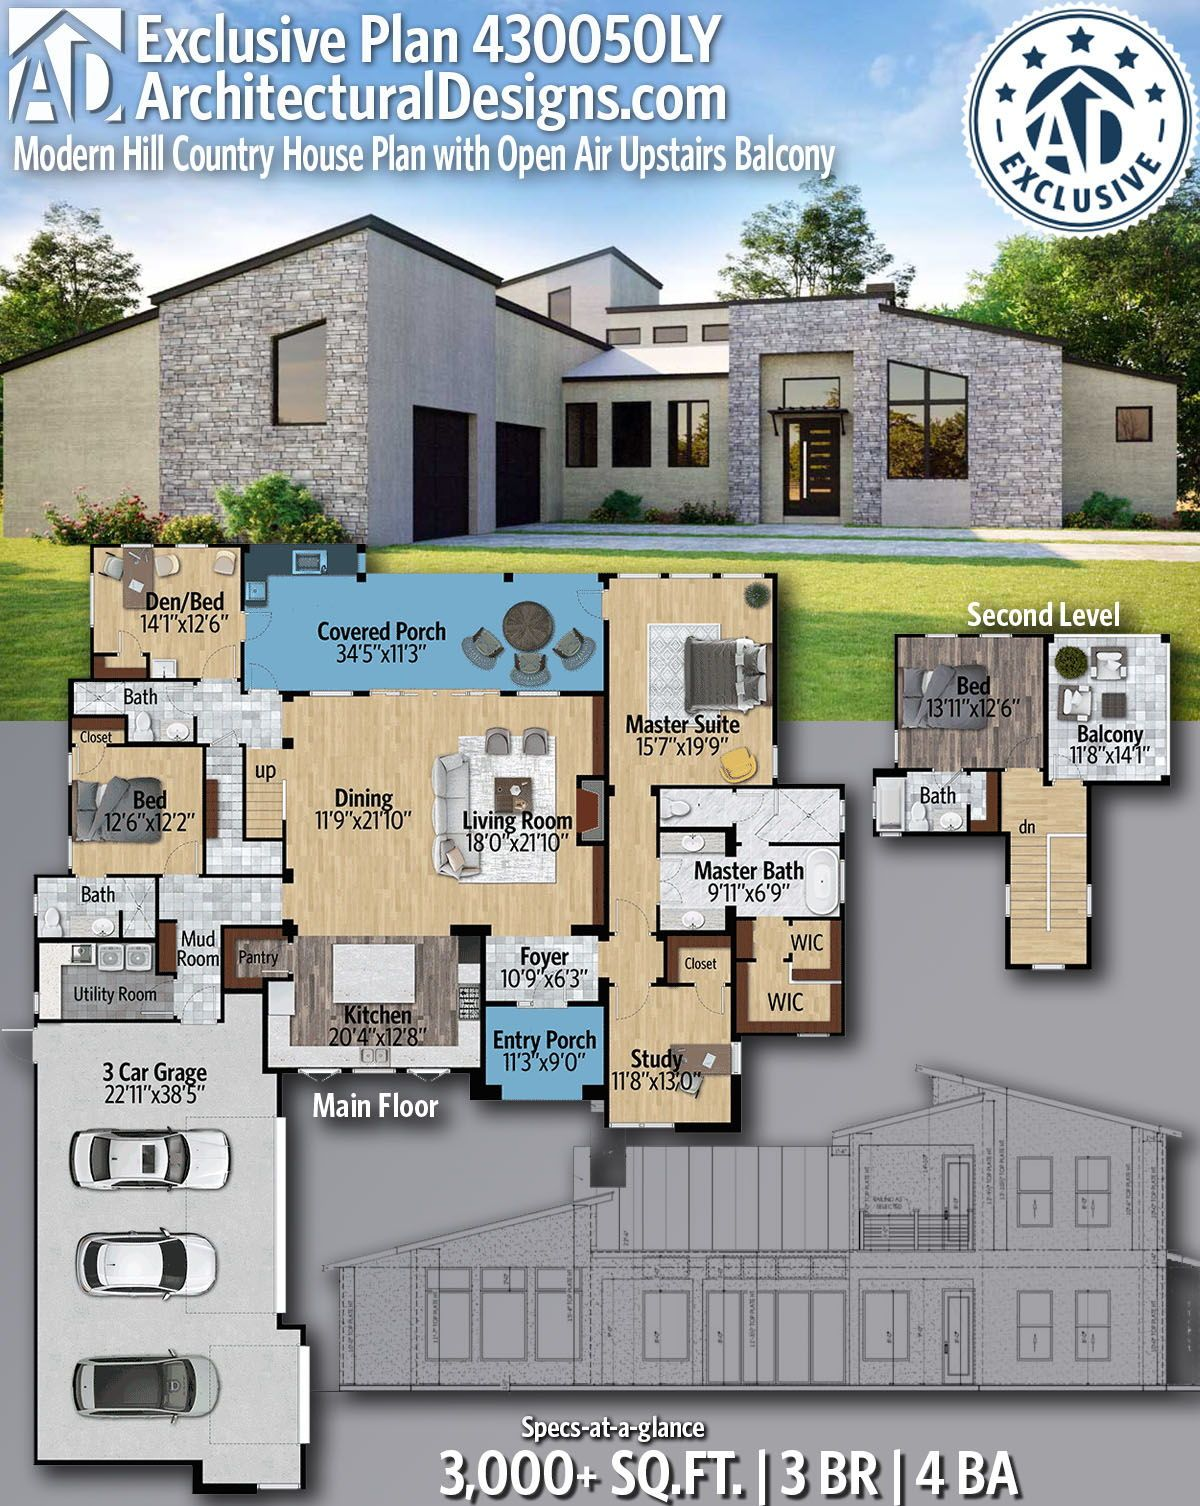 Plan 430050ly Modern Hill Country House Plan With Open Air Upstairs Balcony House Plans Country House Plan Country House Plans